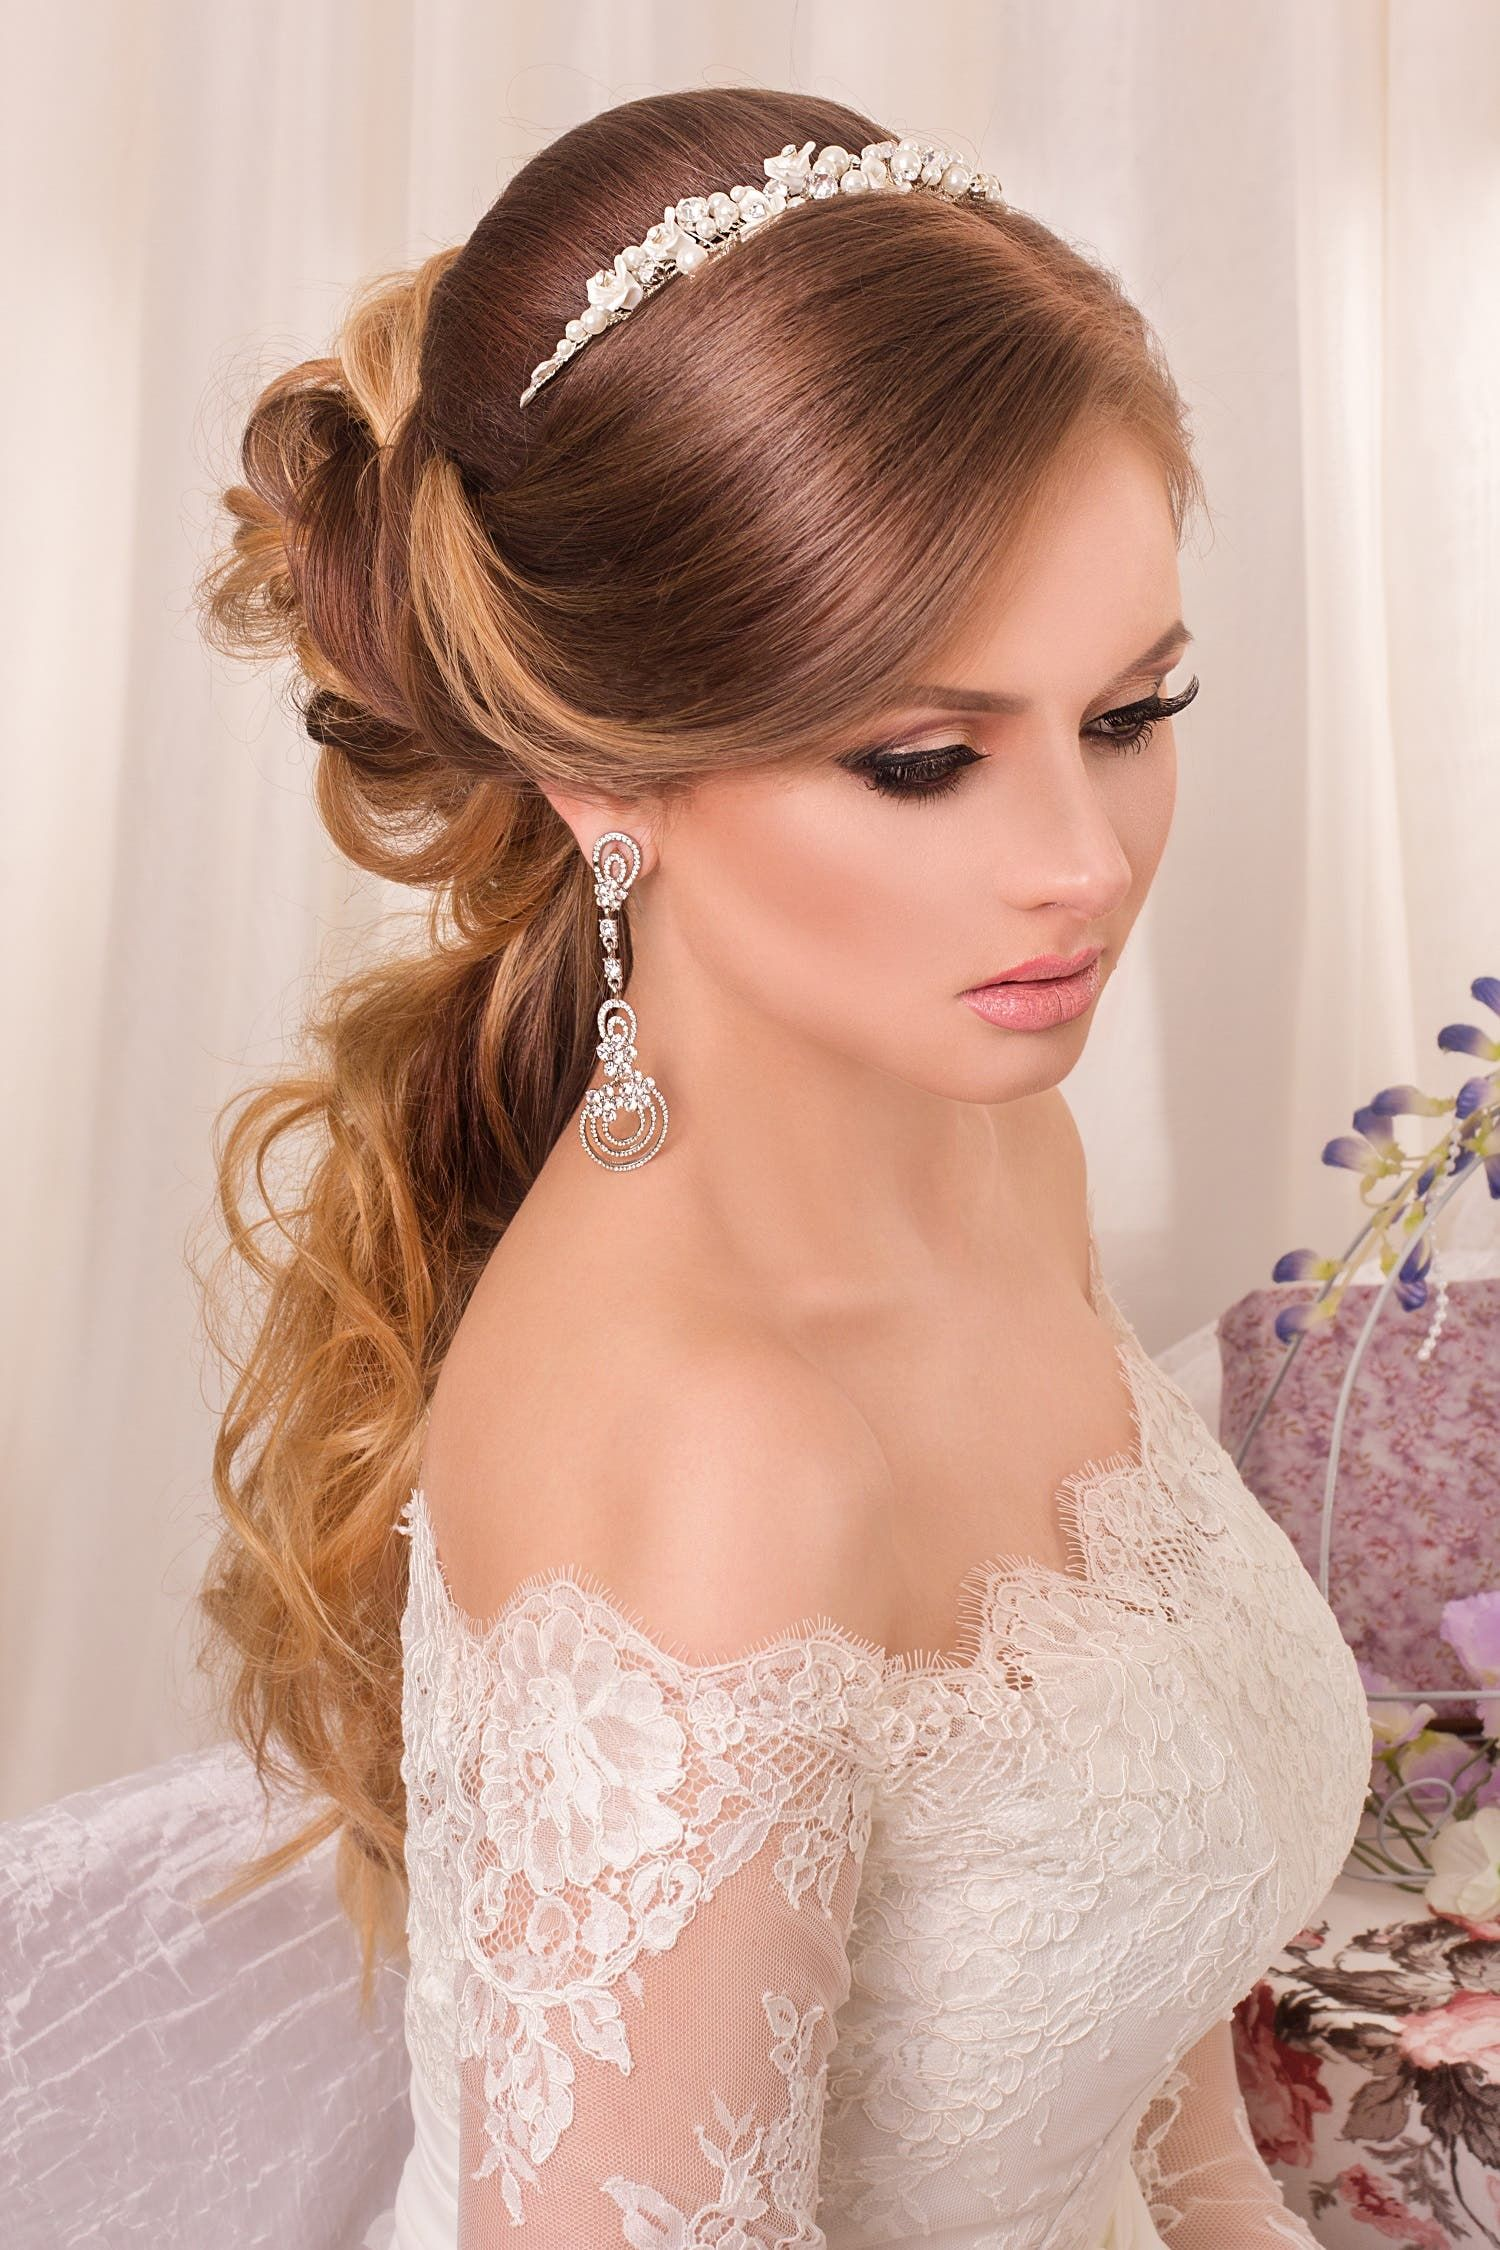 Choosing The Perfect Hairstyle To Match Your Wedding Dress In 2020 Best Wedding Hairstyles Hairstyles For Gowns Unique Wedding Hairstyles